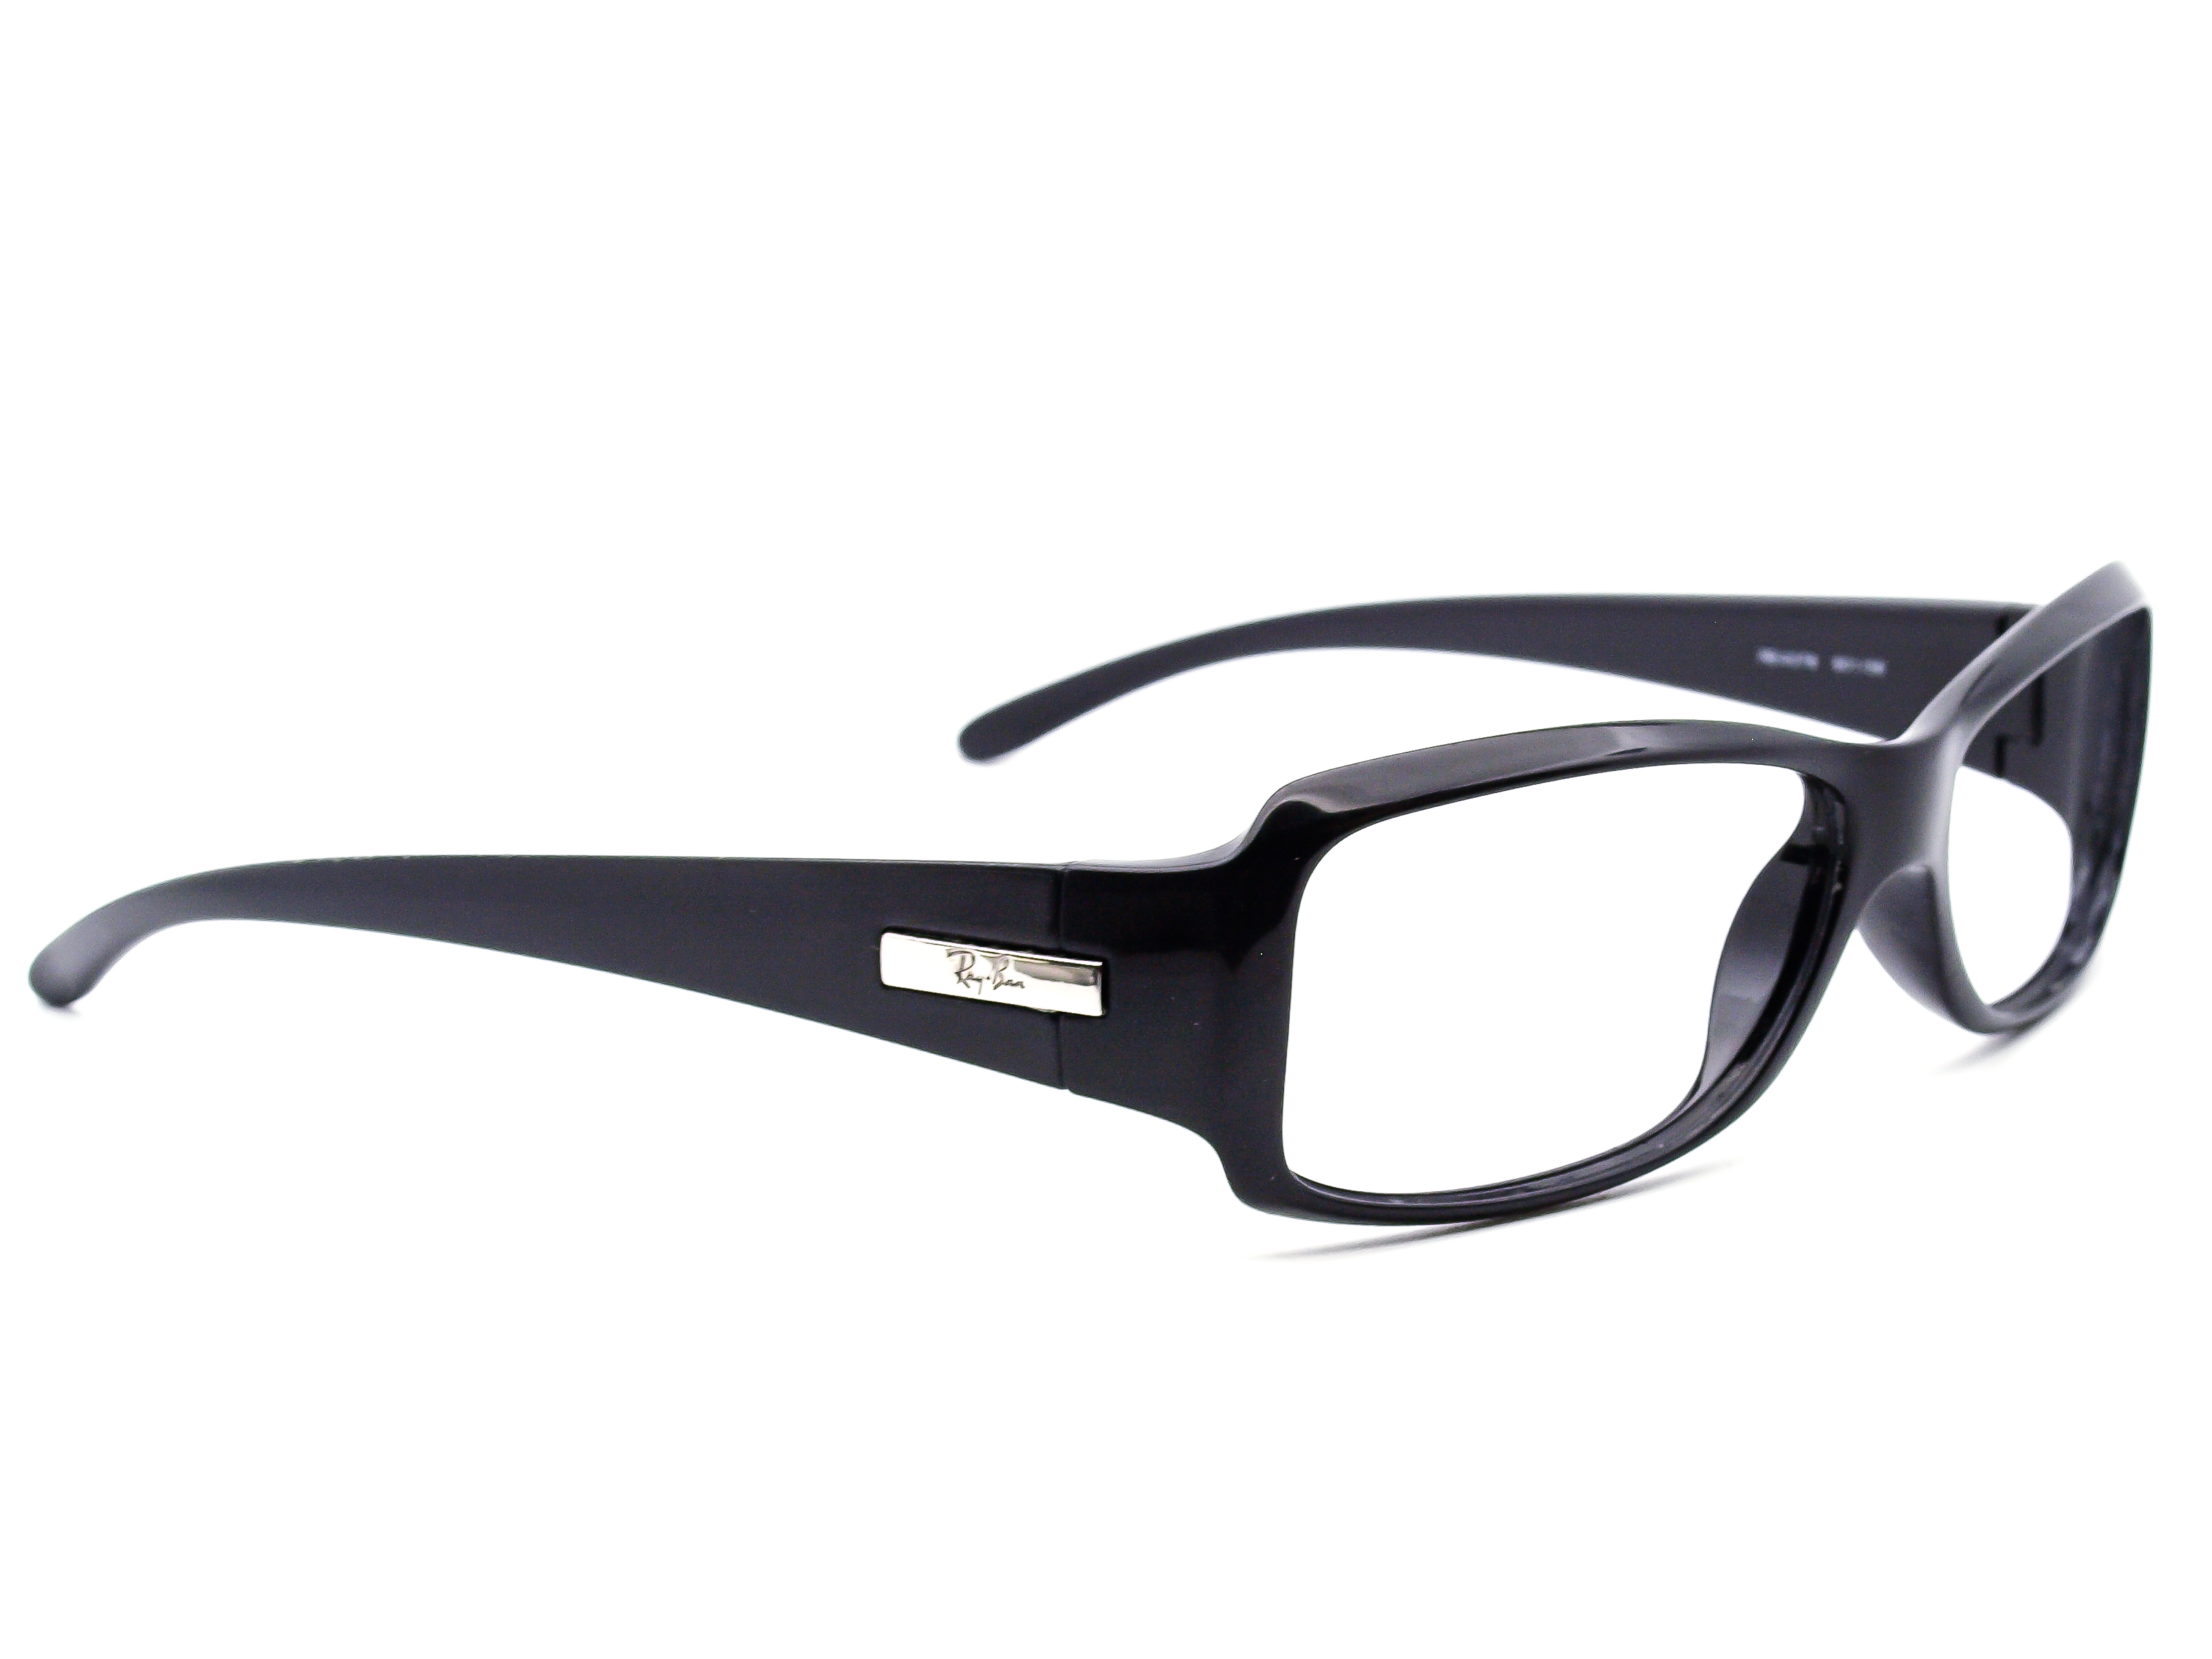 Ray Ban RB 4078 601/58 Sunglasses Frame Only